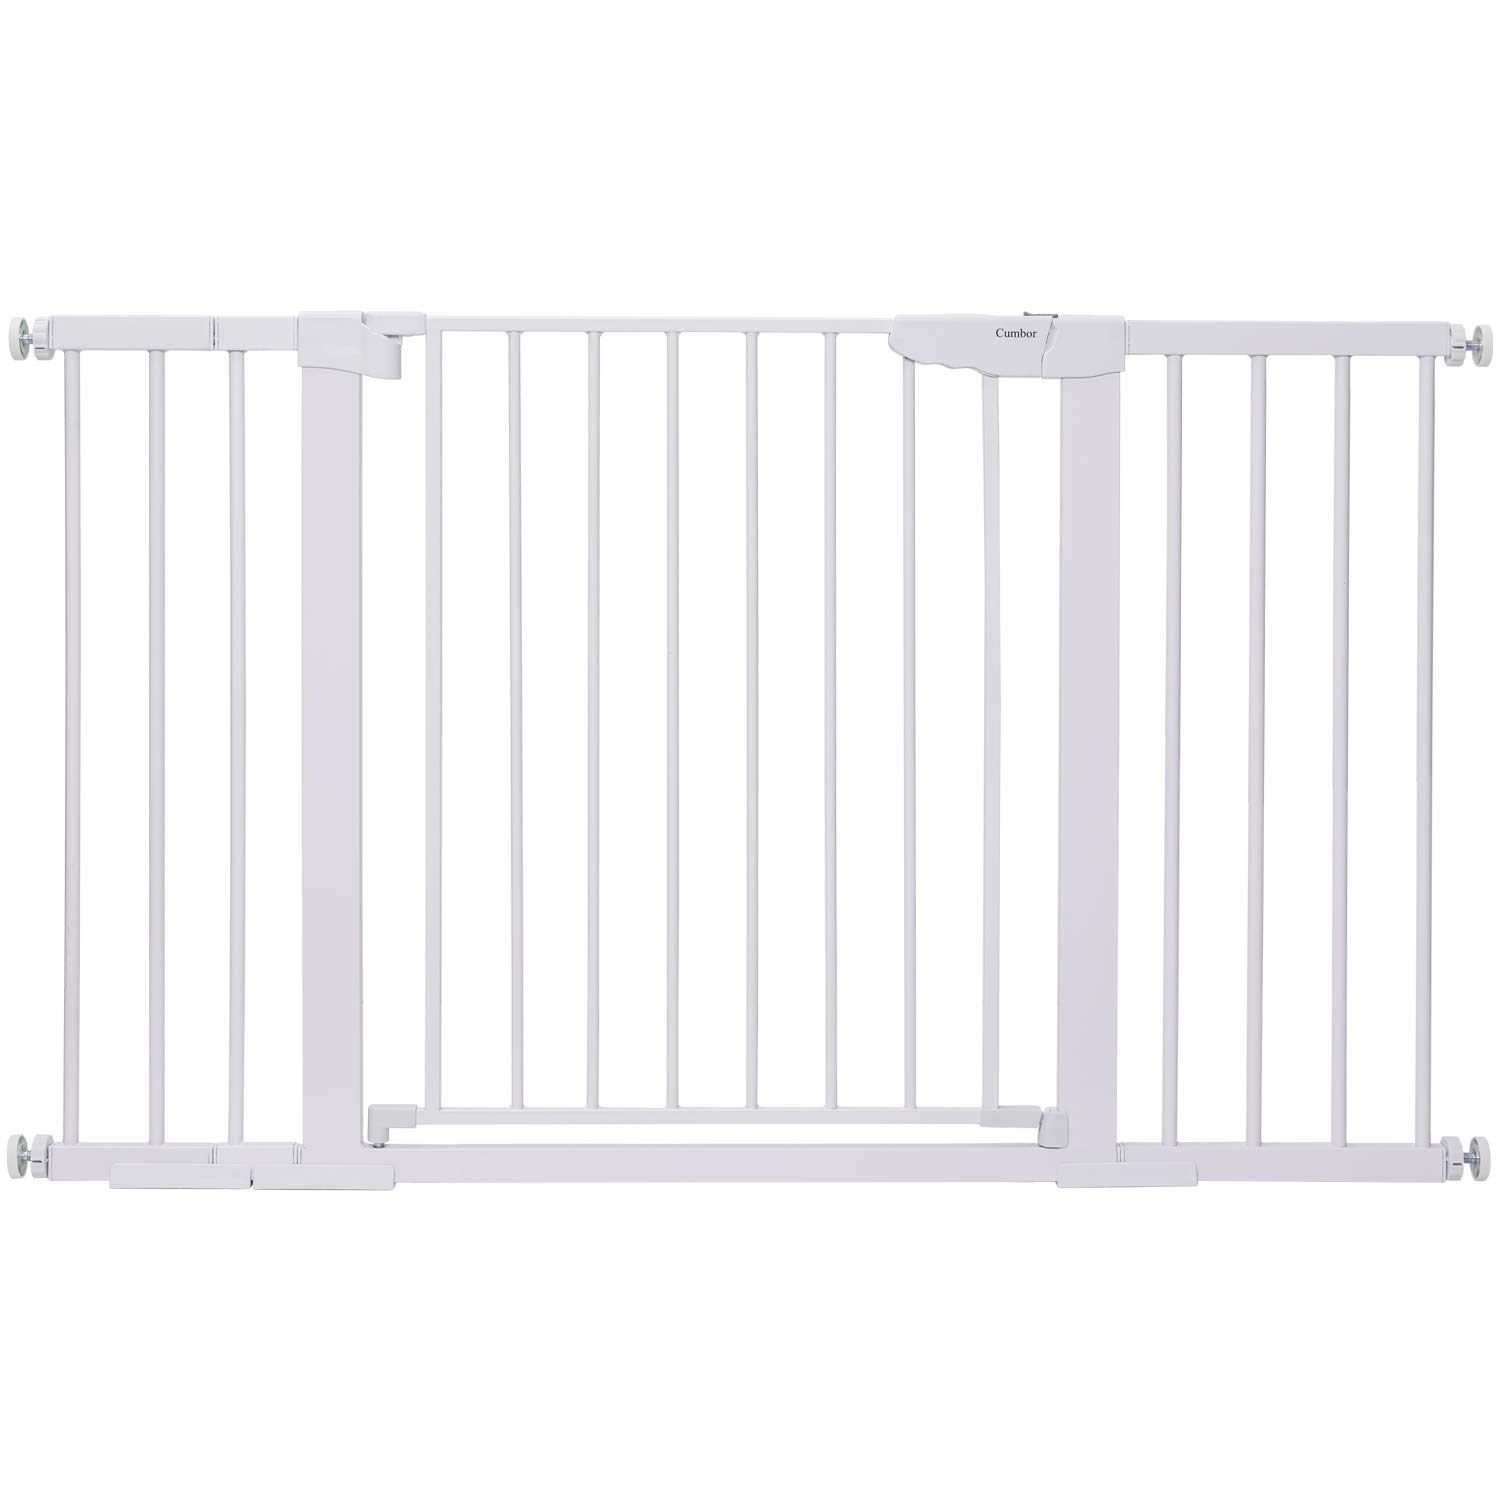 """Cumbor 51.6-Inch Baby Gate Extra Wide, Easy Walk Thru Dog Gate for The House, Auto Close Baby Gates for Stairs, Doorways, Includes 2.75"""", 5.5"""" and 11"""" Extension Kit, Mounting Kit"""